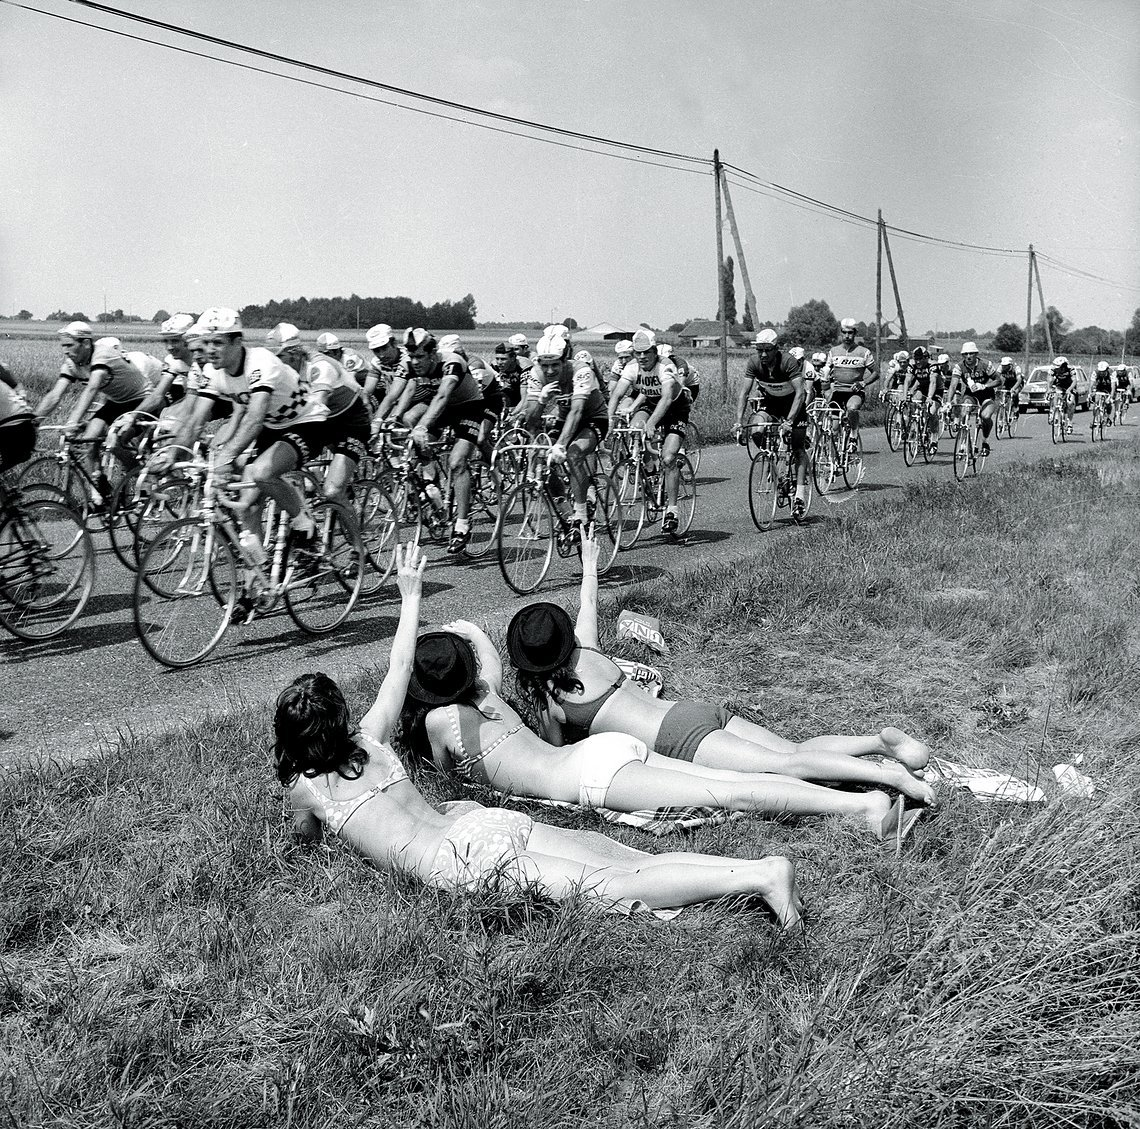 Rungis (Val-de-Marne) - Nevers (Nièvre), 7th stage, 4 July 1971, Photo © Presse Sports.